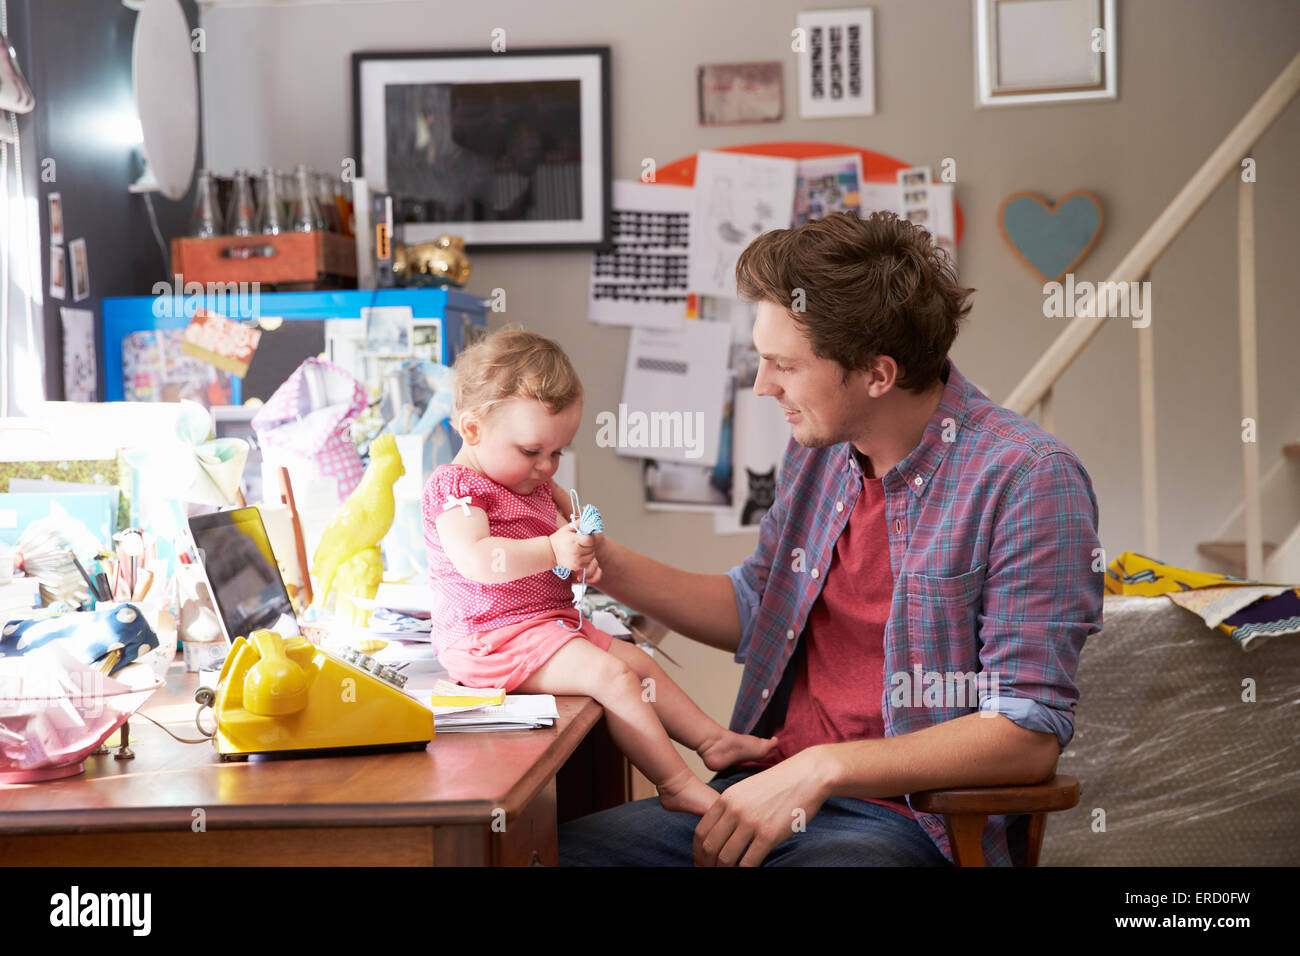 running home office. Father With Daughter Running Small Business From Home Office E